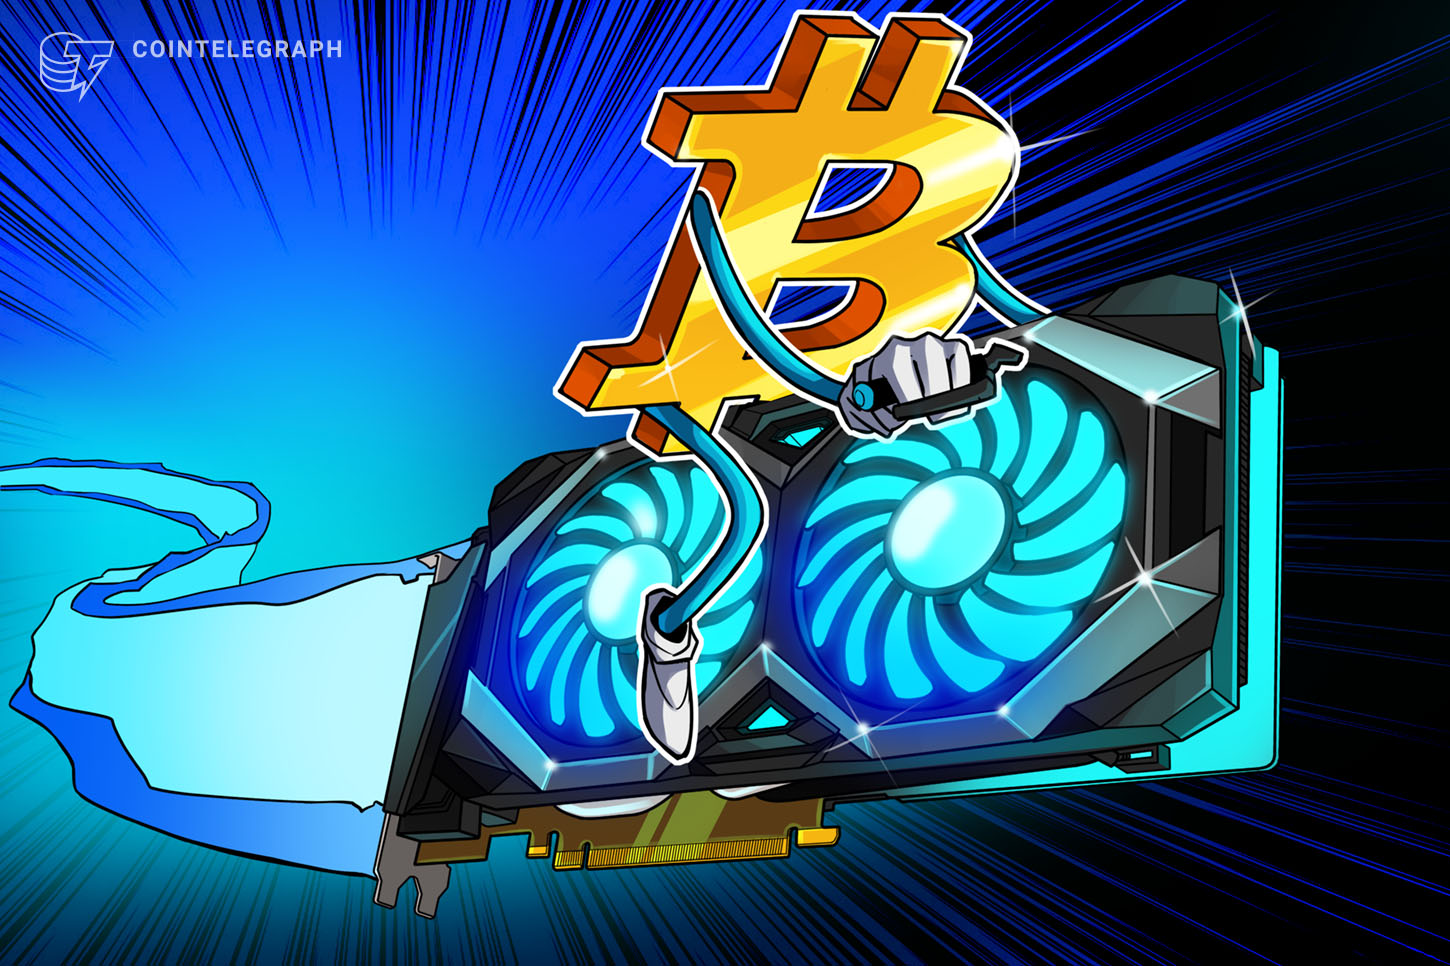 Bitcoin Mining Council survey estimates a 56% sustainable power mix in Q2